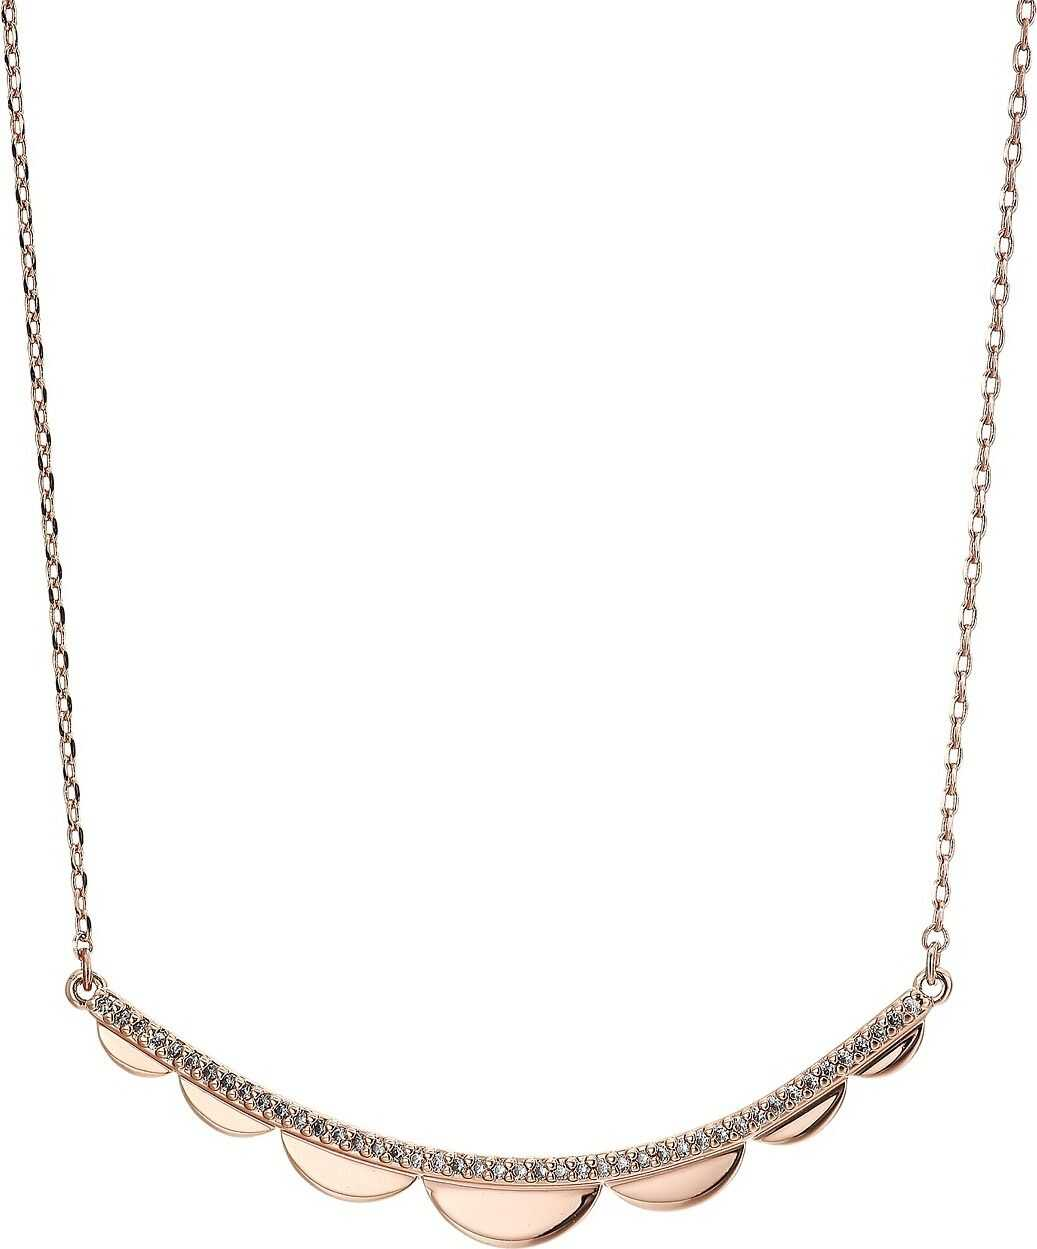 Kate Spade New York Slender Scallops Delicate Necklace Clear/Rose Gold